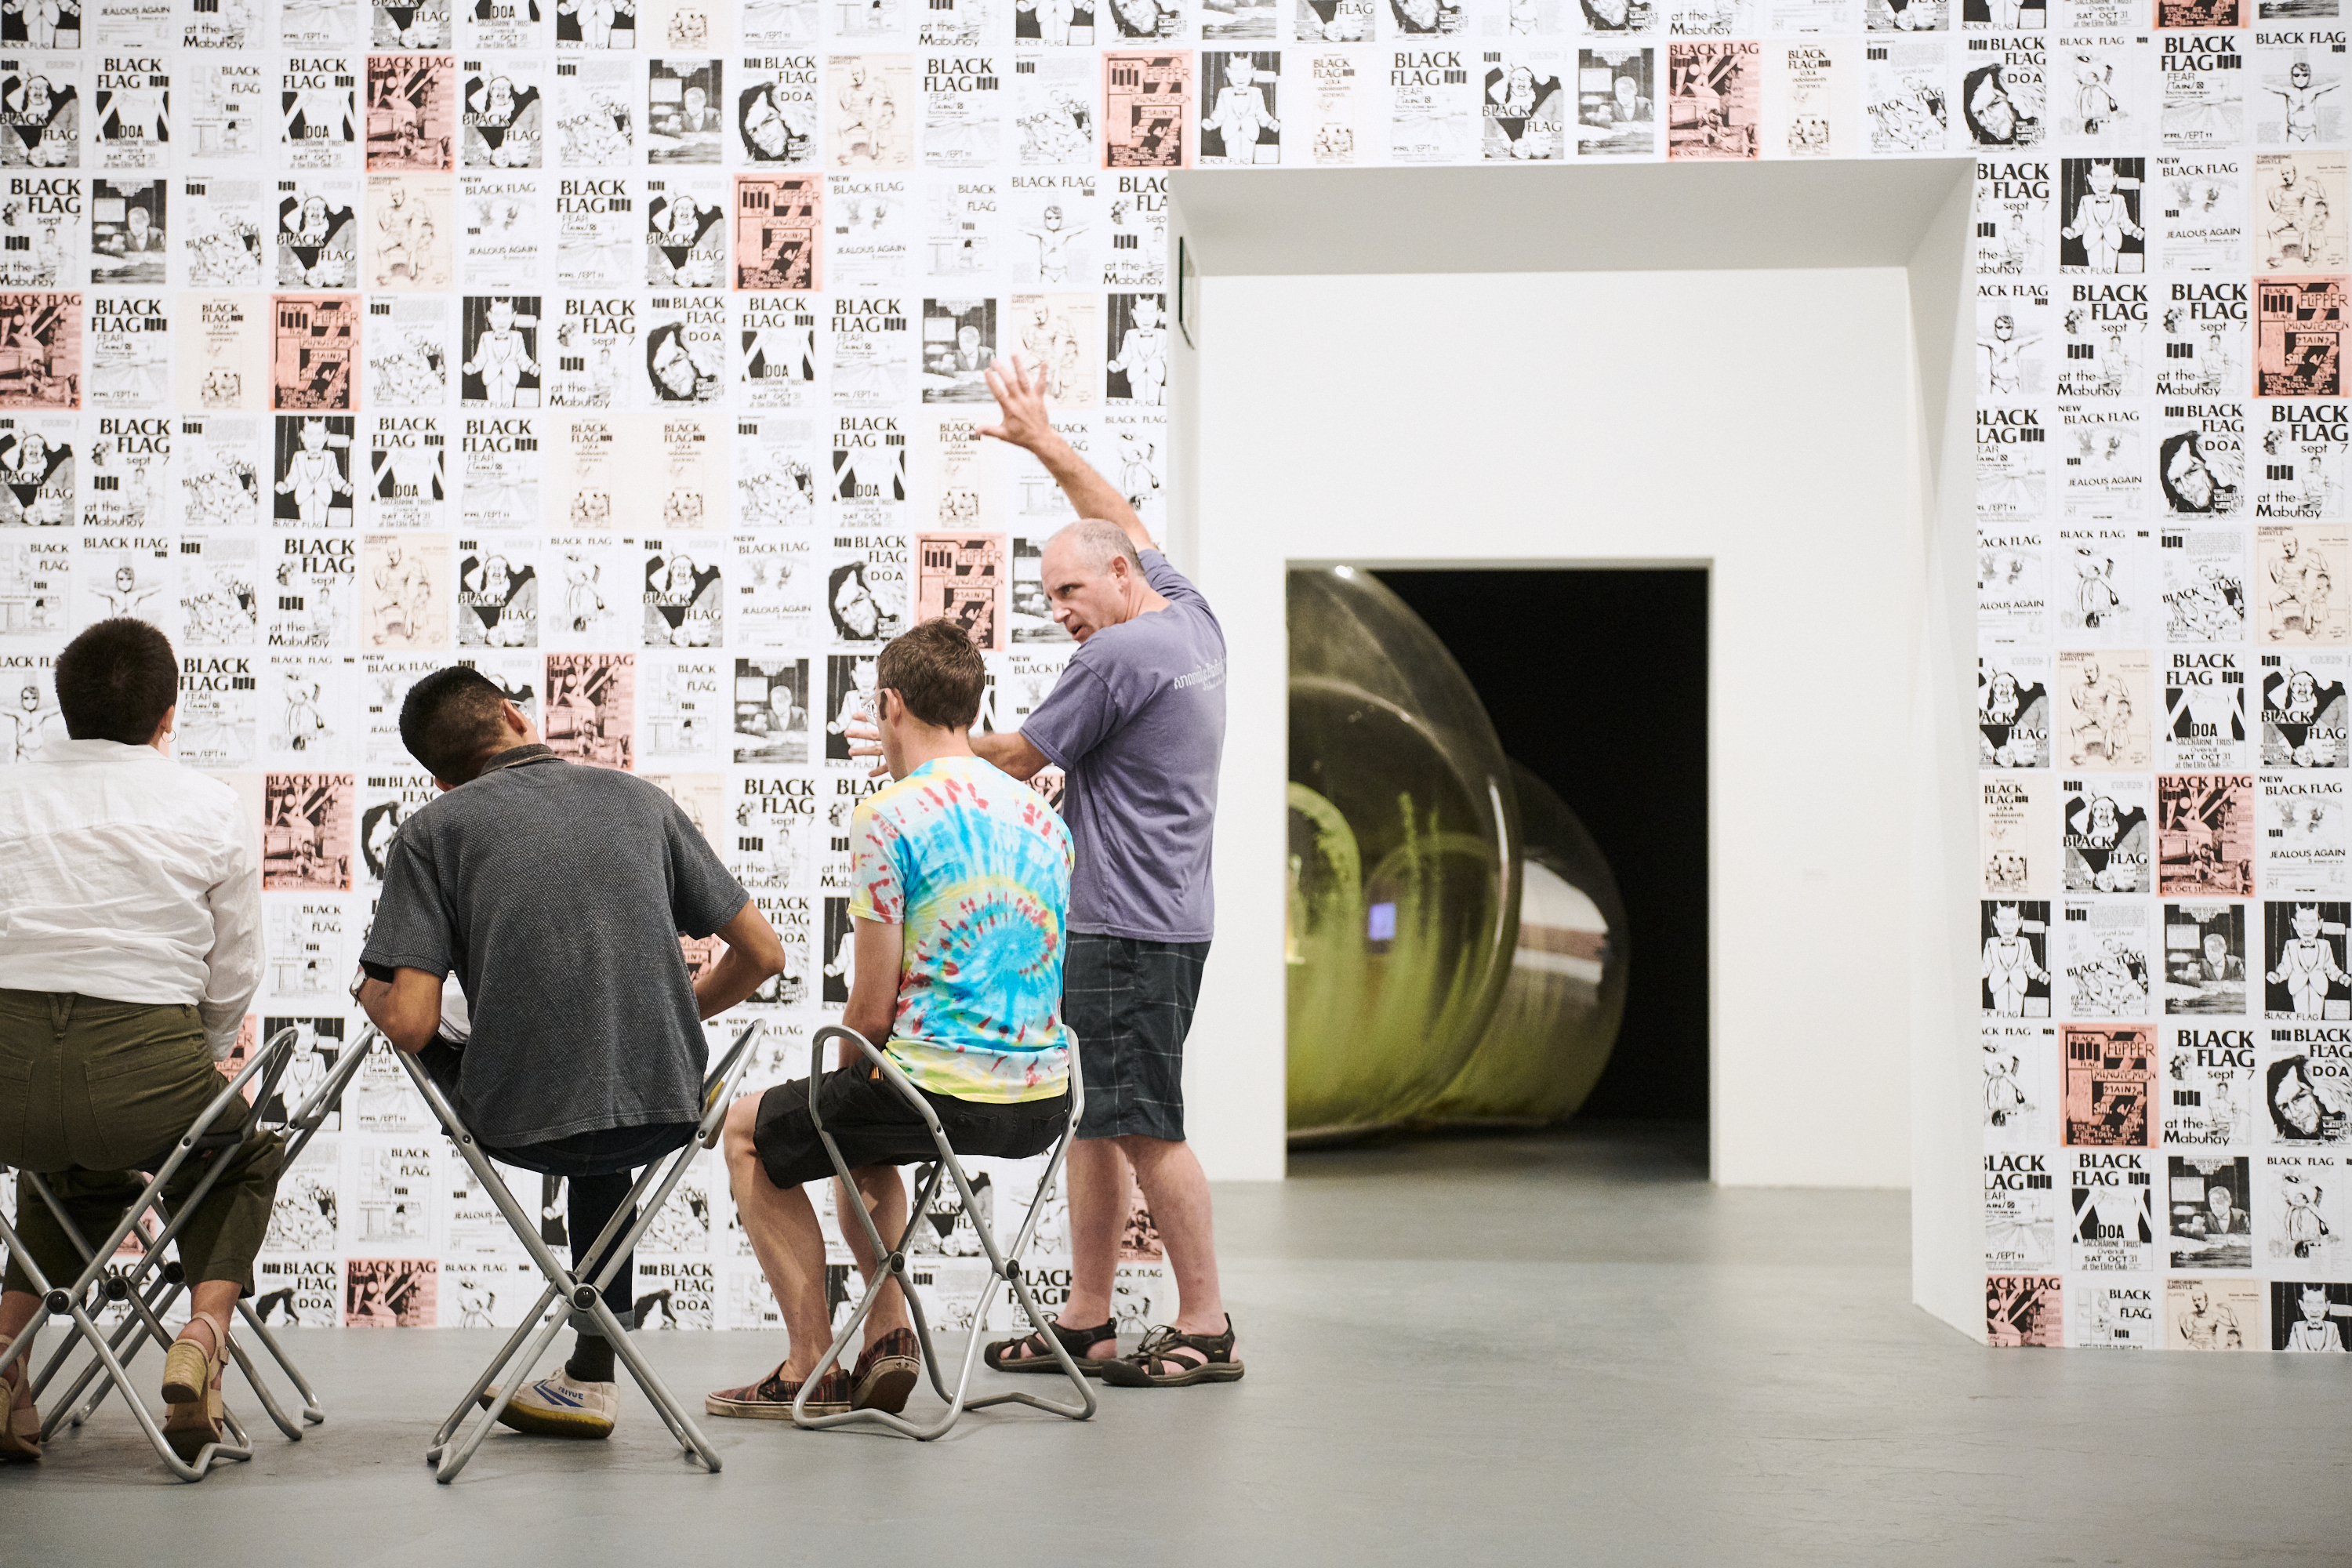 Image courtesy of The Museum of Contemporary Art, Los Angeles, photo by Sean MacGillivray.